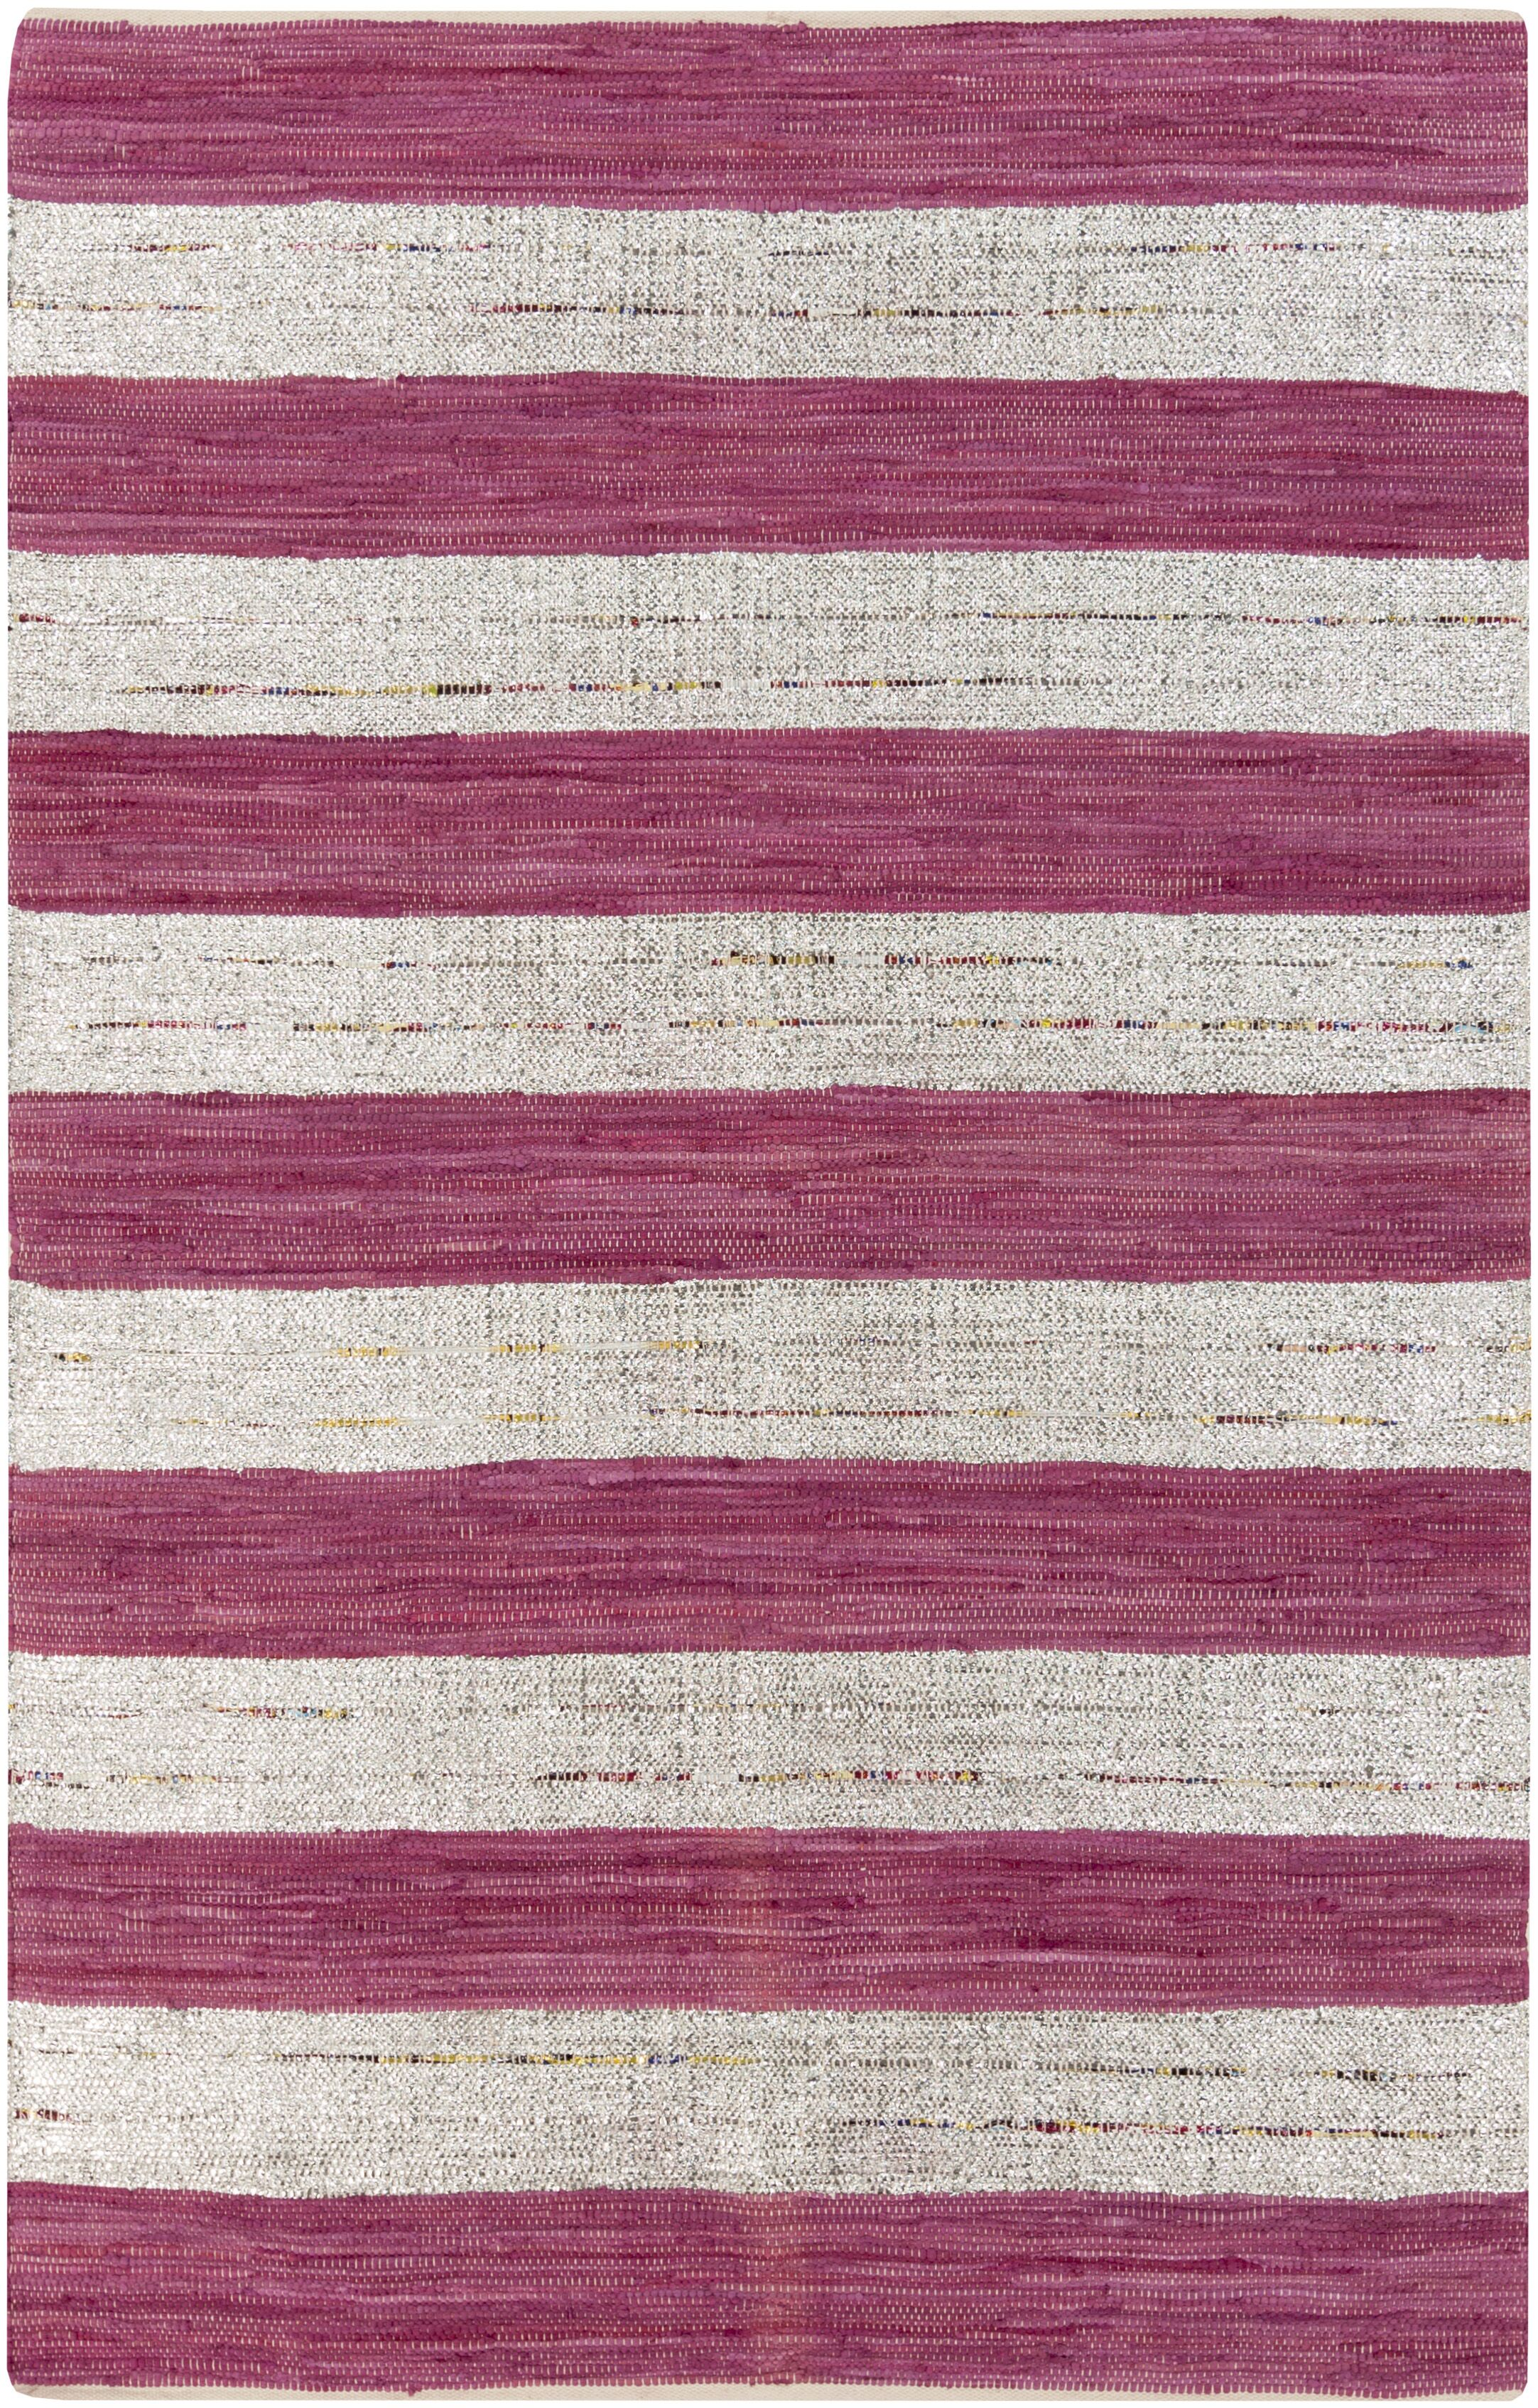 Chesterfield Magenta & Gray Area Rug Rug Size: Rectangle 5' x 8'